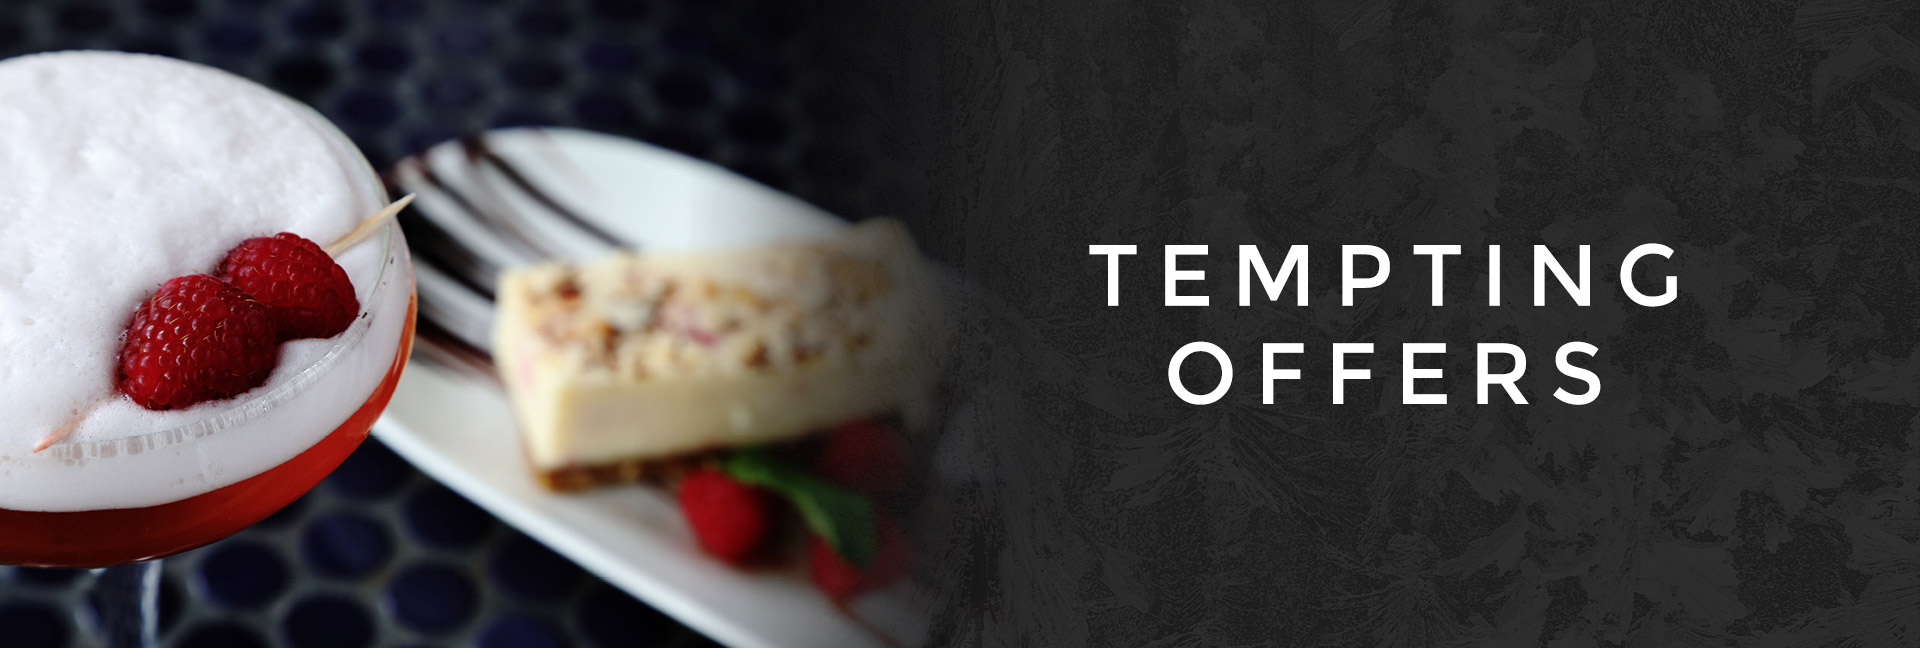 Temping offers at All Bar One Appold Street